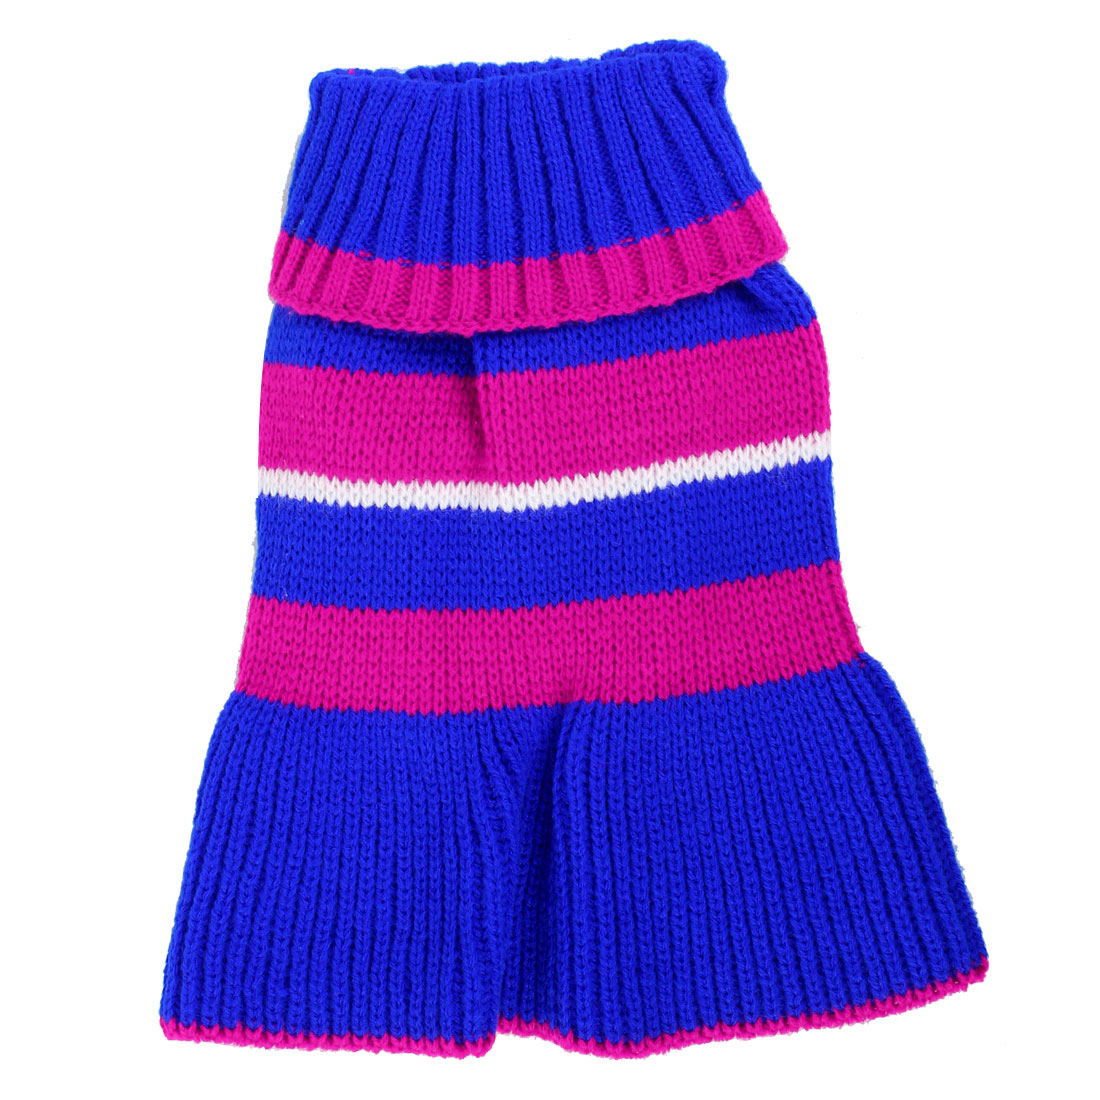 Pet Dog Poodle Fuchsia Blue Stripe Pattern Ribbed Cuff Knitwear Turtleneck Dress Apparel Sweater Size XS